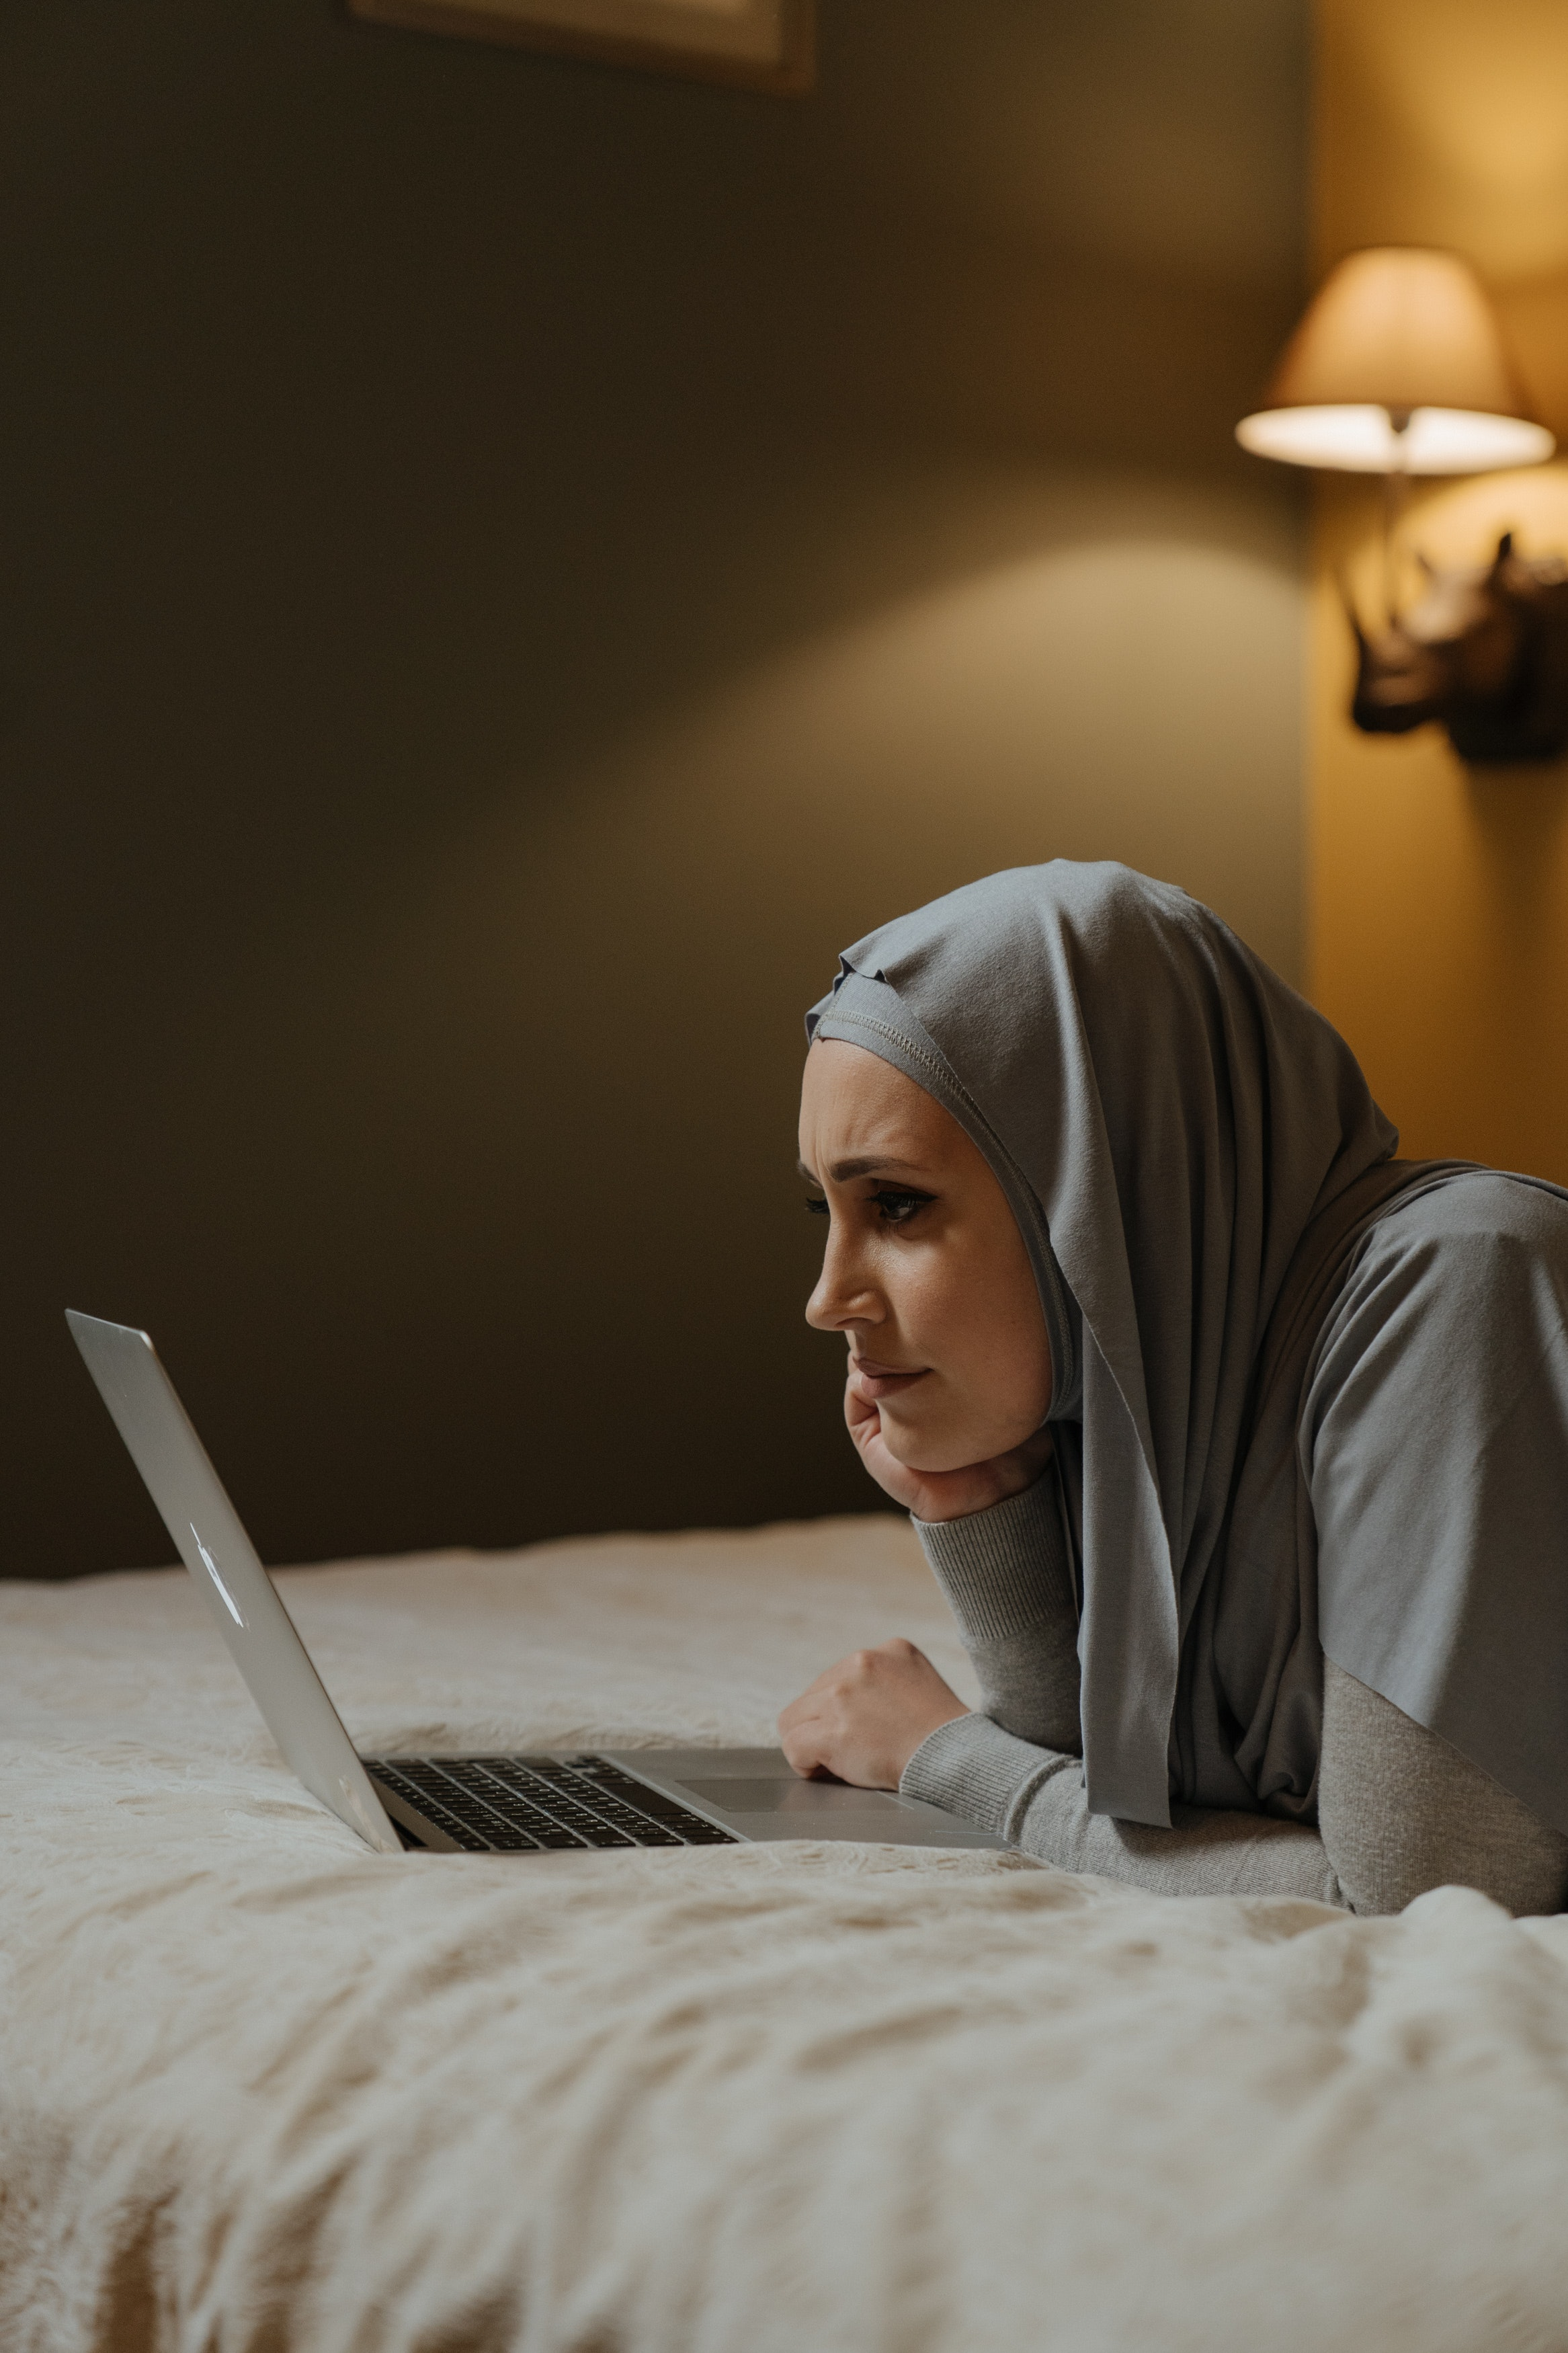 A Person of Colour wearing a grey headscarf looking at a laptop on a bed. They look engrossed.